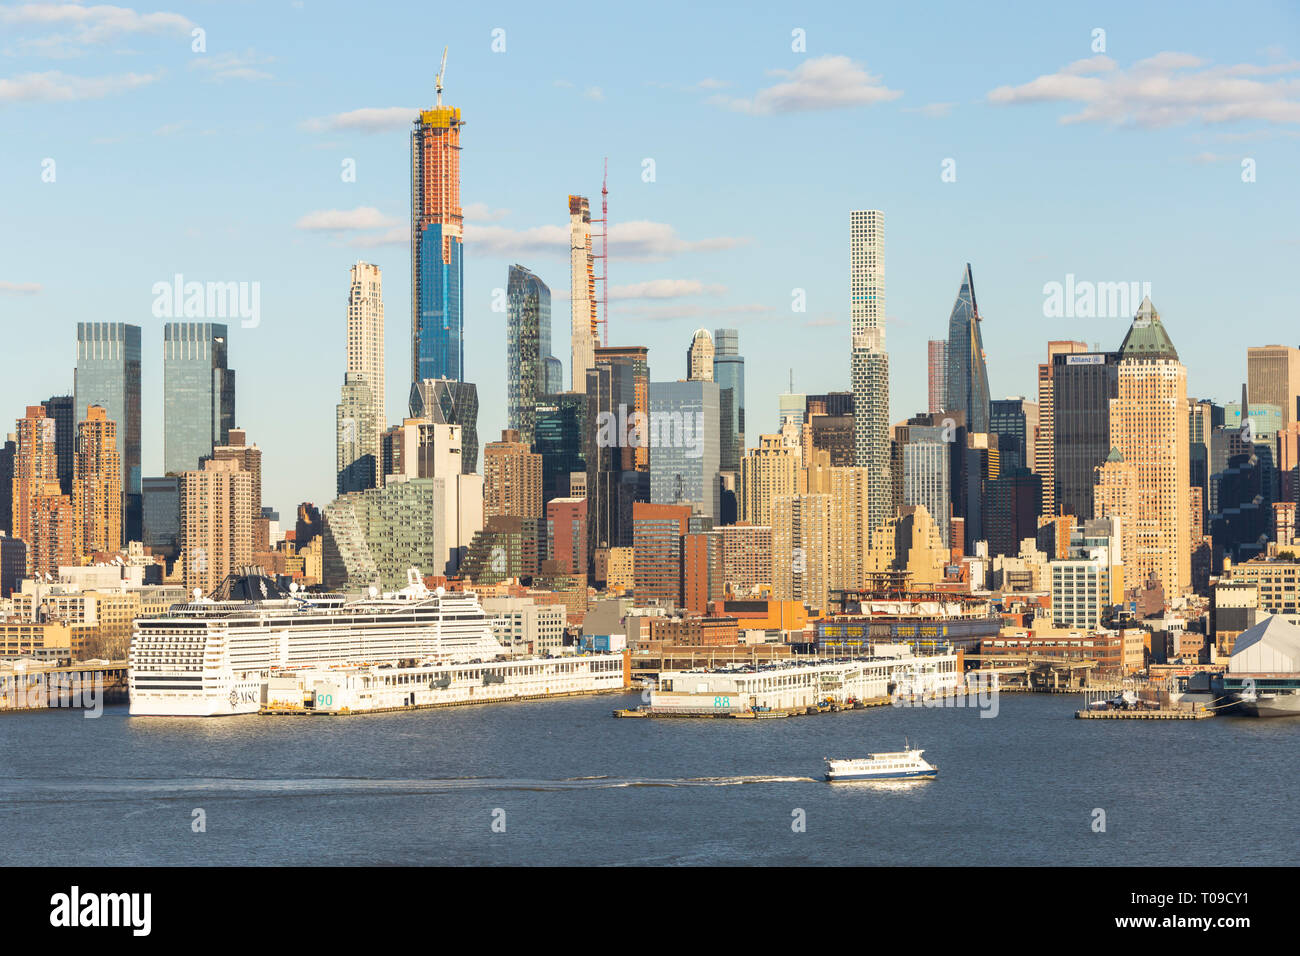 Part of the evolving mid-town Manhattan skyline, including supertall residential skyscrapers on West 57th street, in New York City. - Stock Image